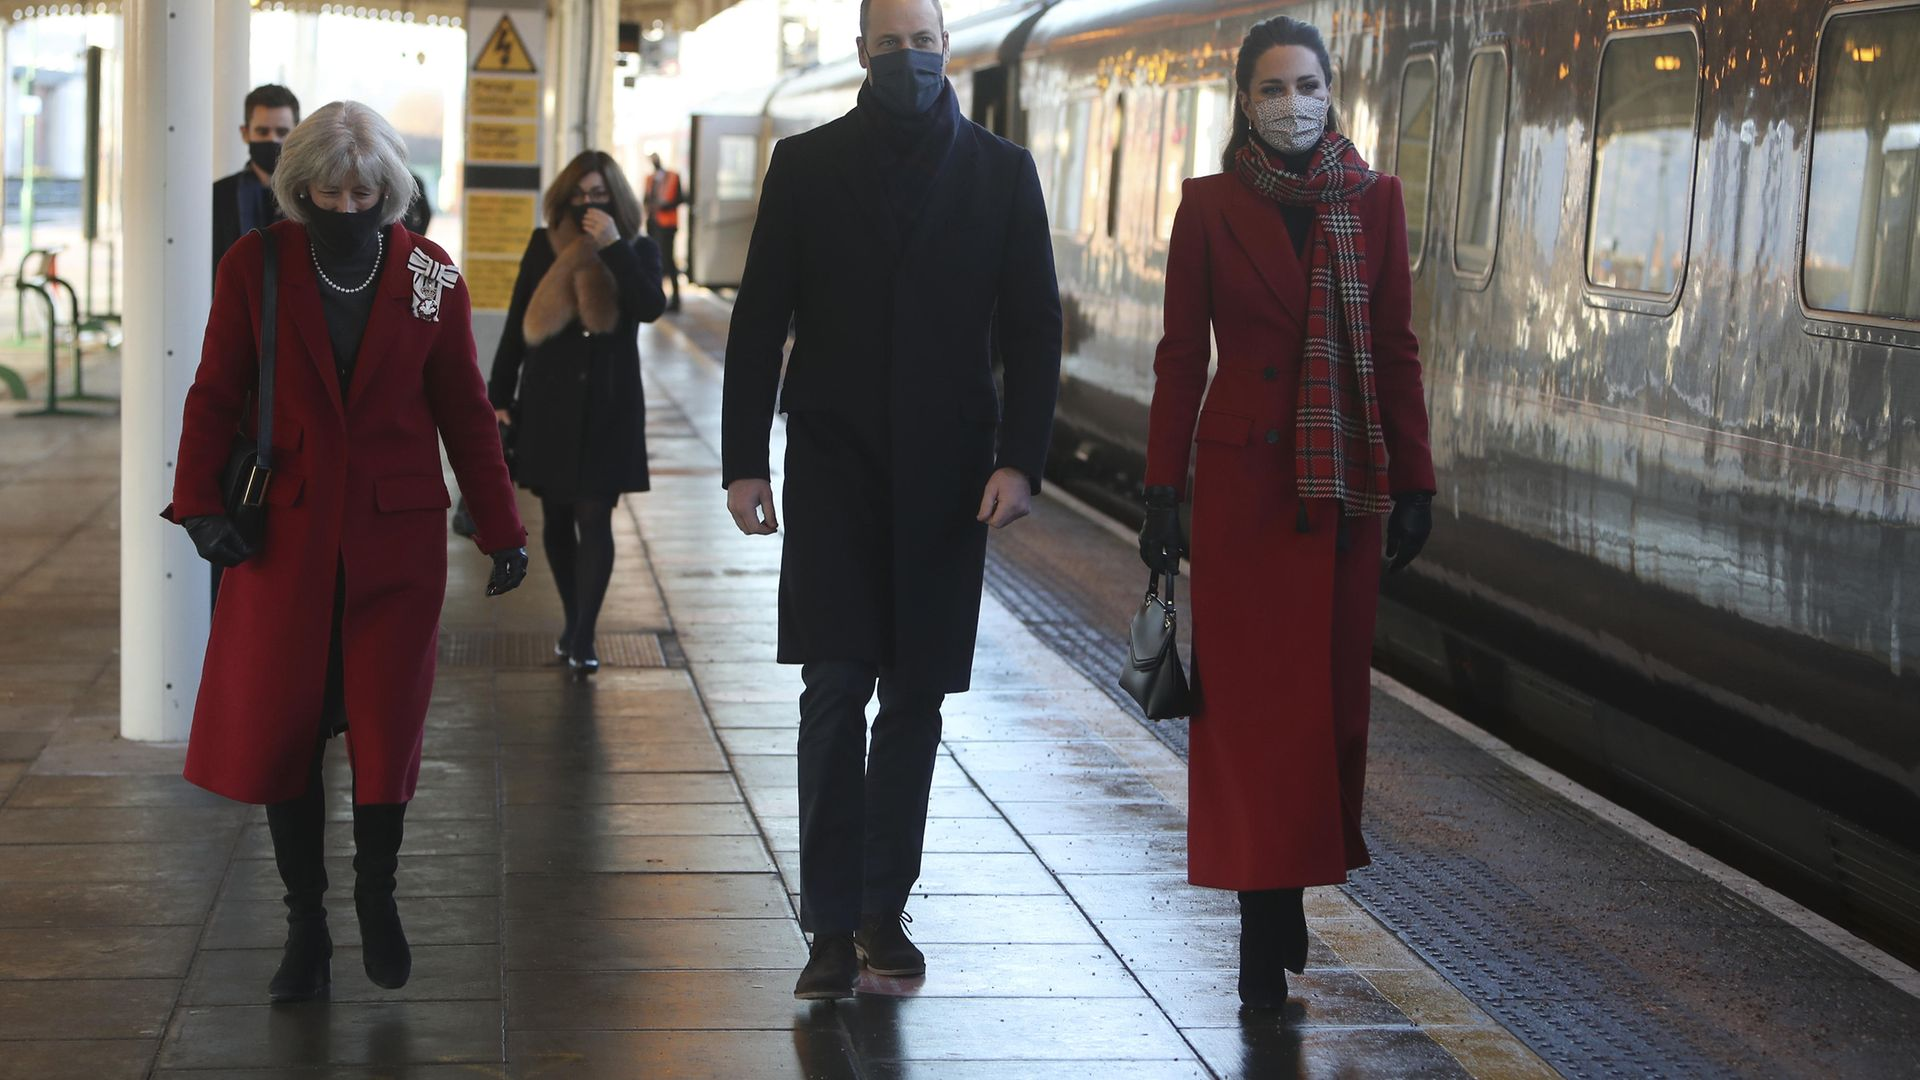 The Duke and Duchess of Cambridge walk with Lord Lieutenant of South Glamorgan Morfudd Meredith (left) as they arrive at Cardiff Central train station on the final day of a three-day tour across the country. - Credit: PA